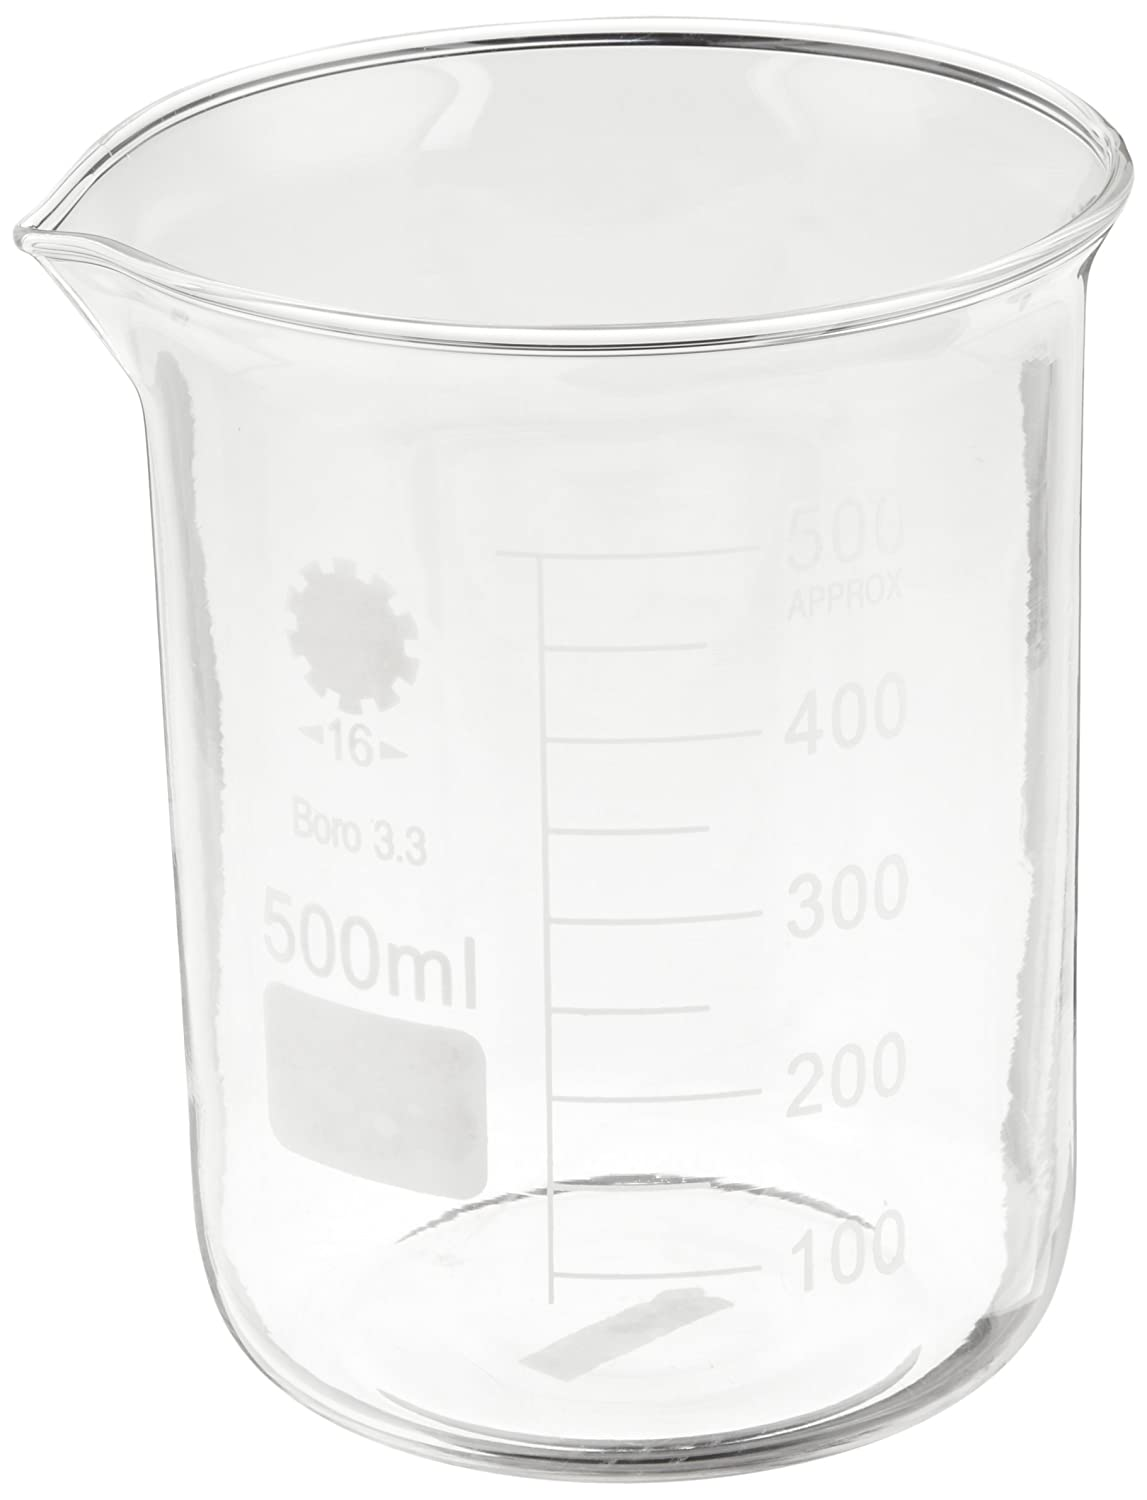 Ajax Scientific Borosilicate Glass Graduated Beaker, 500mL GL010-0500